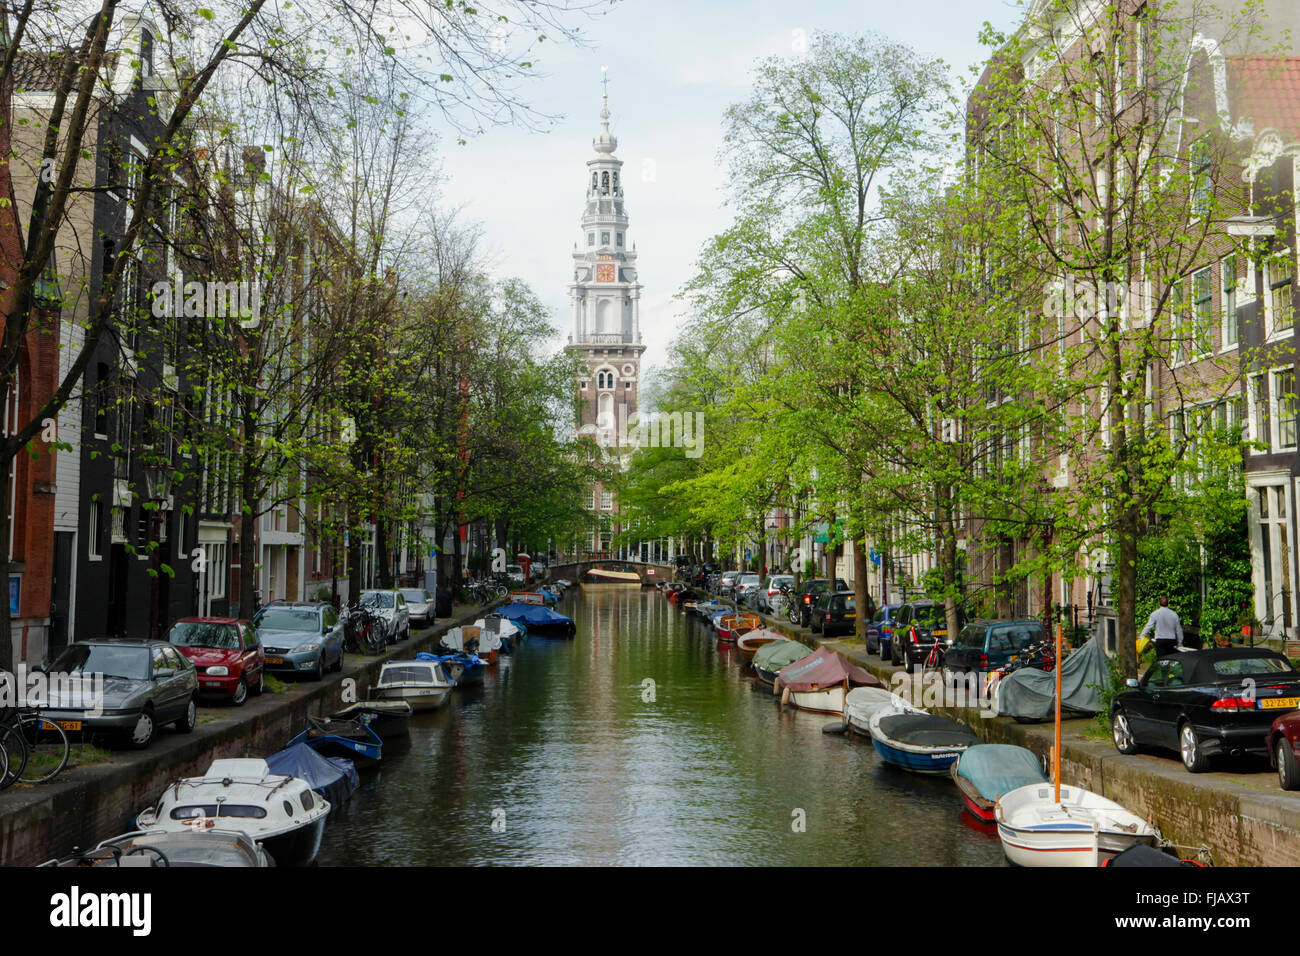 Canal scenery in Amsterdam - Stock Image